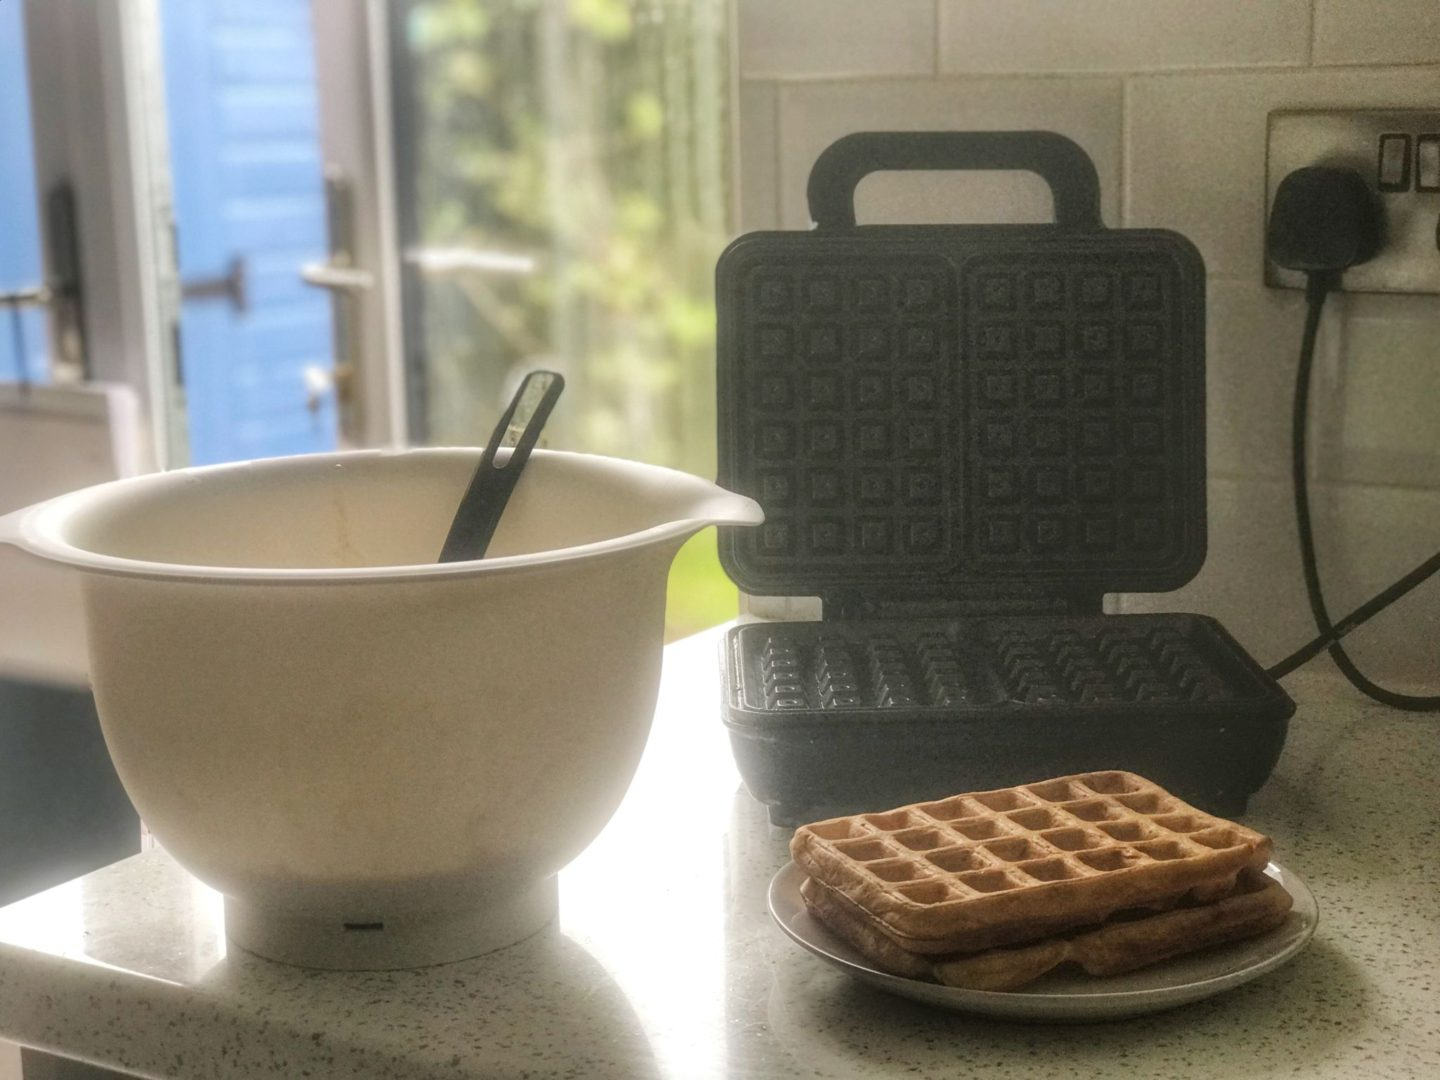 Waffles for babies next to waffle maker and white bowl in kitchen